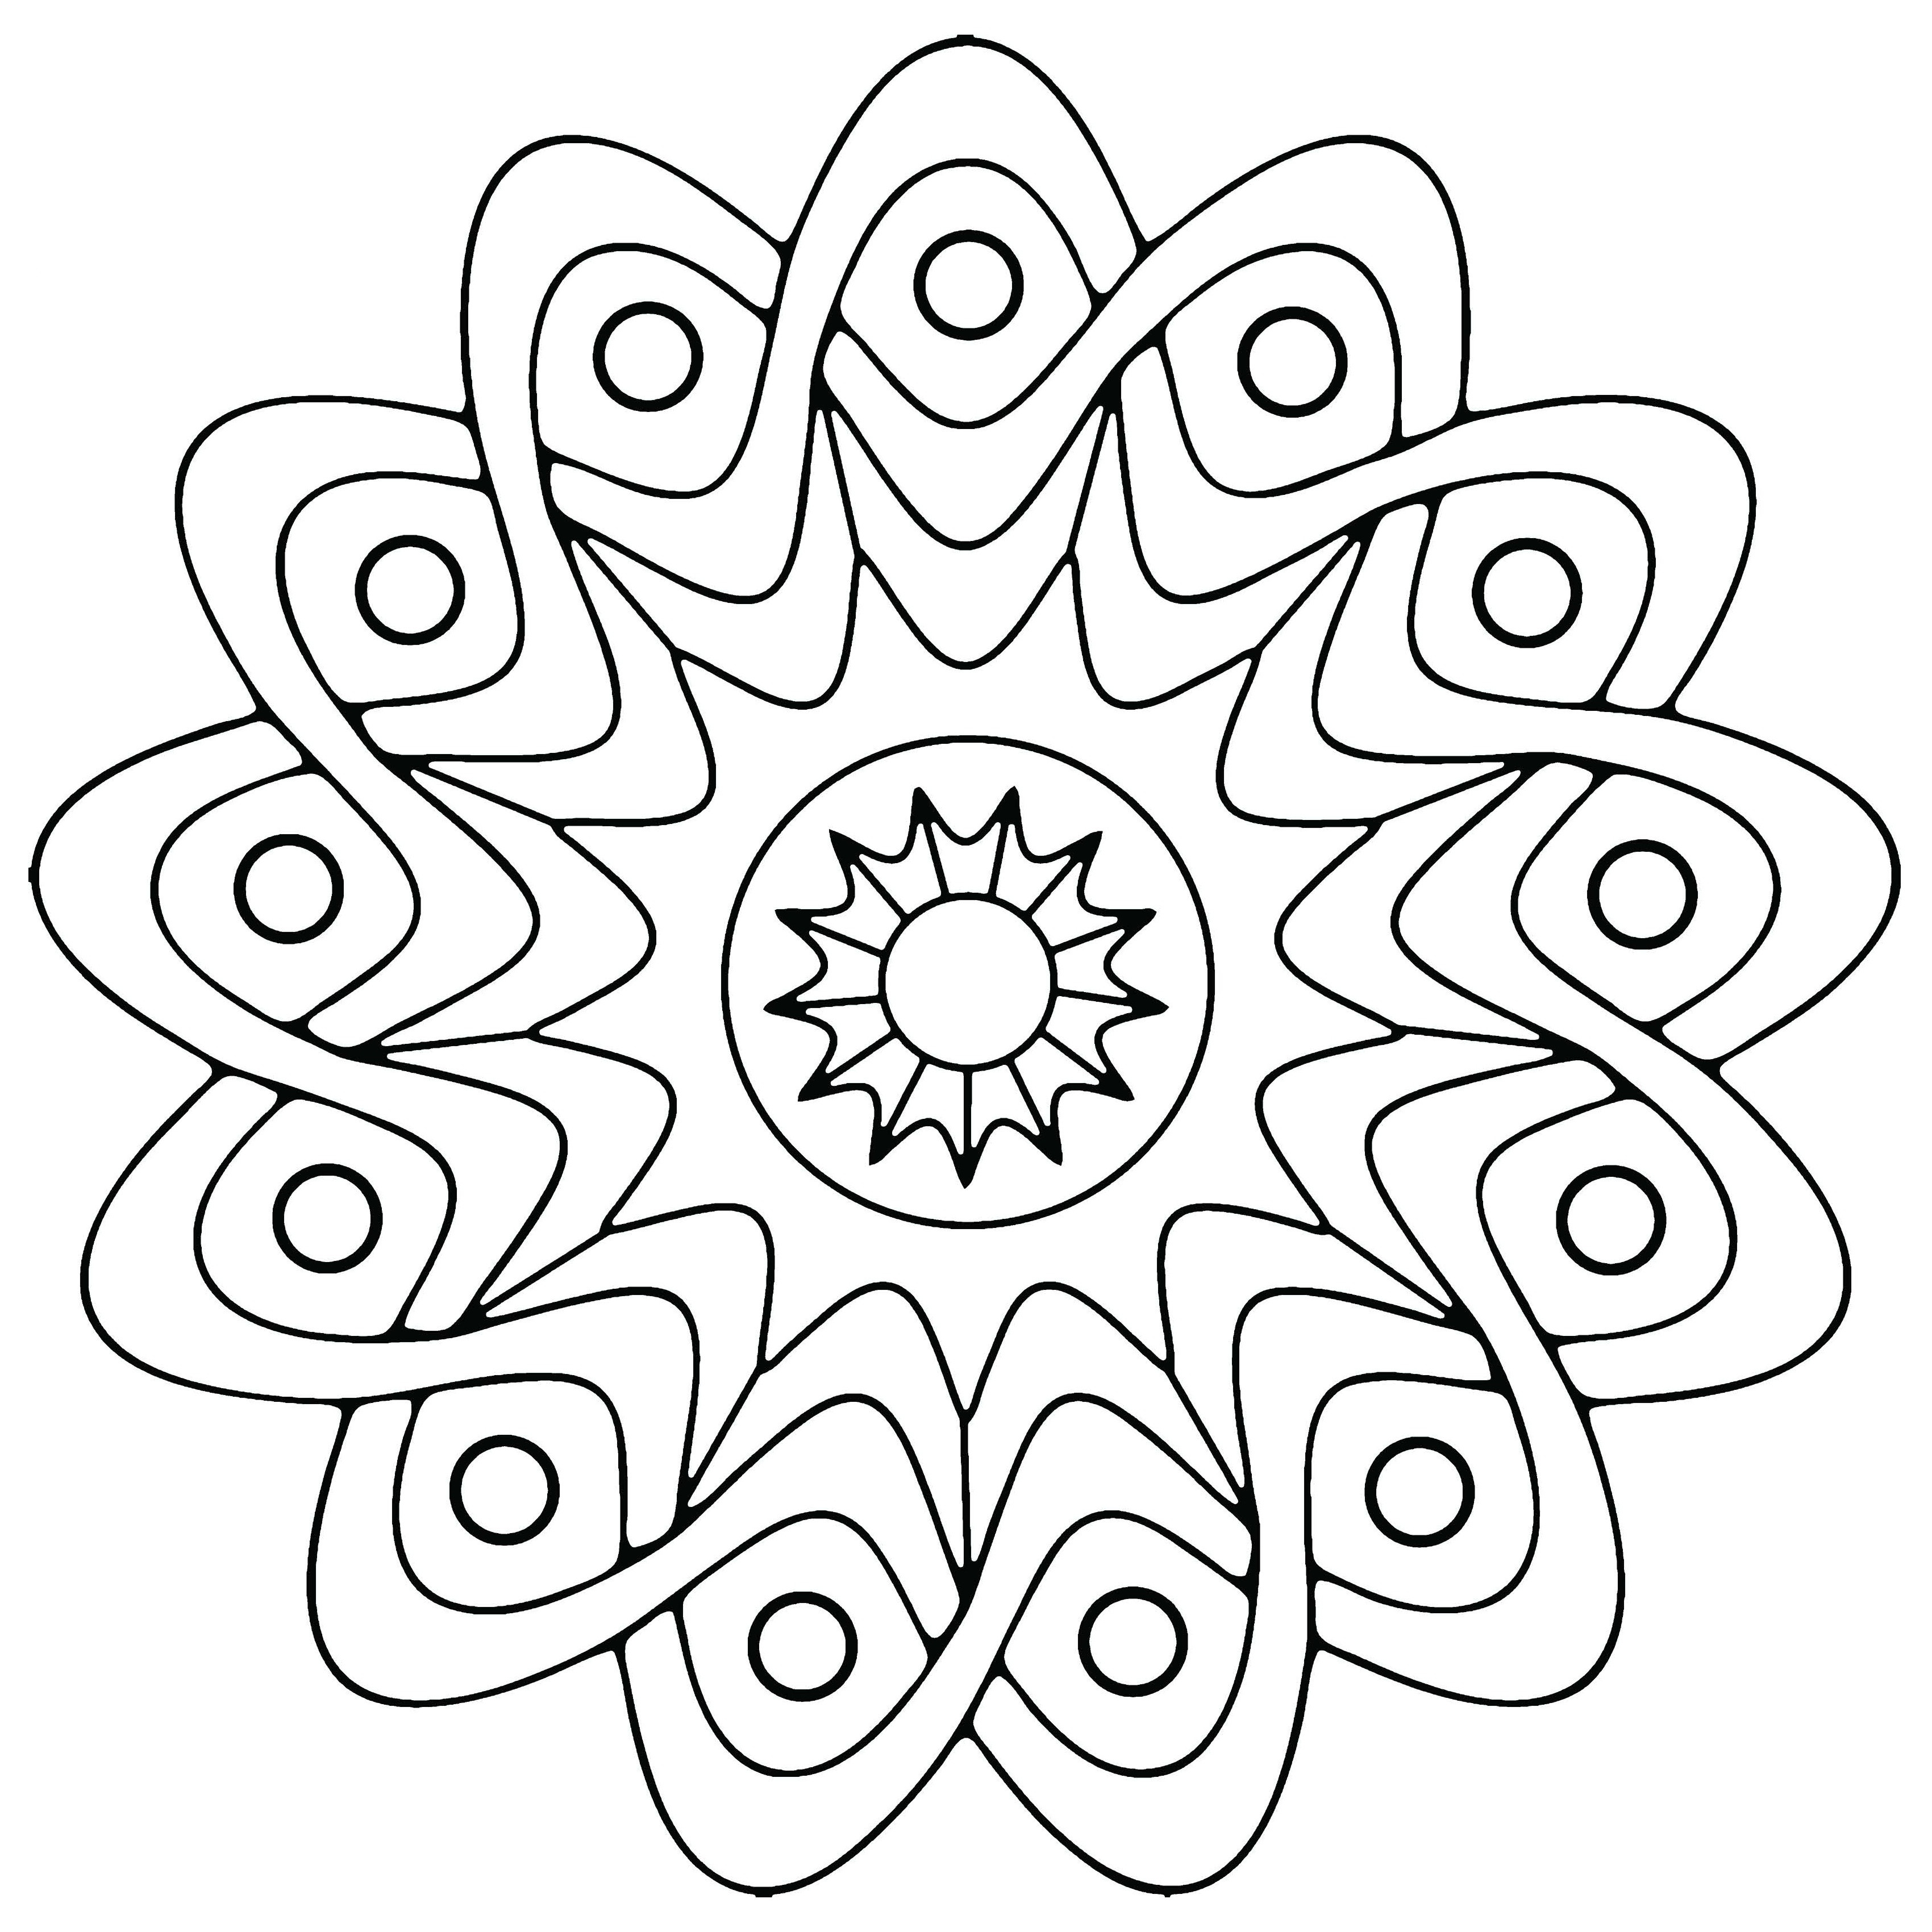 Mandala Art Coloring Pages  Free Printable Geometric Coloring Pages For Kids